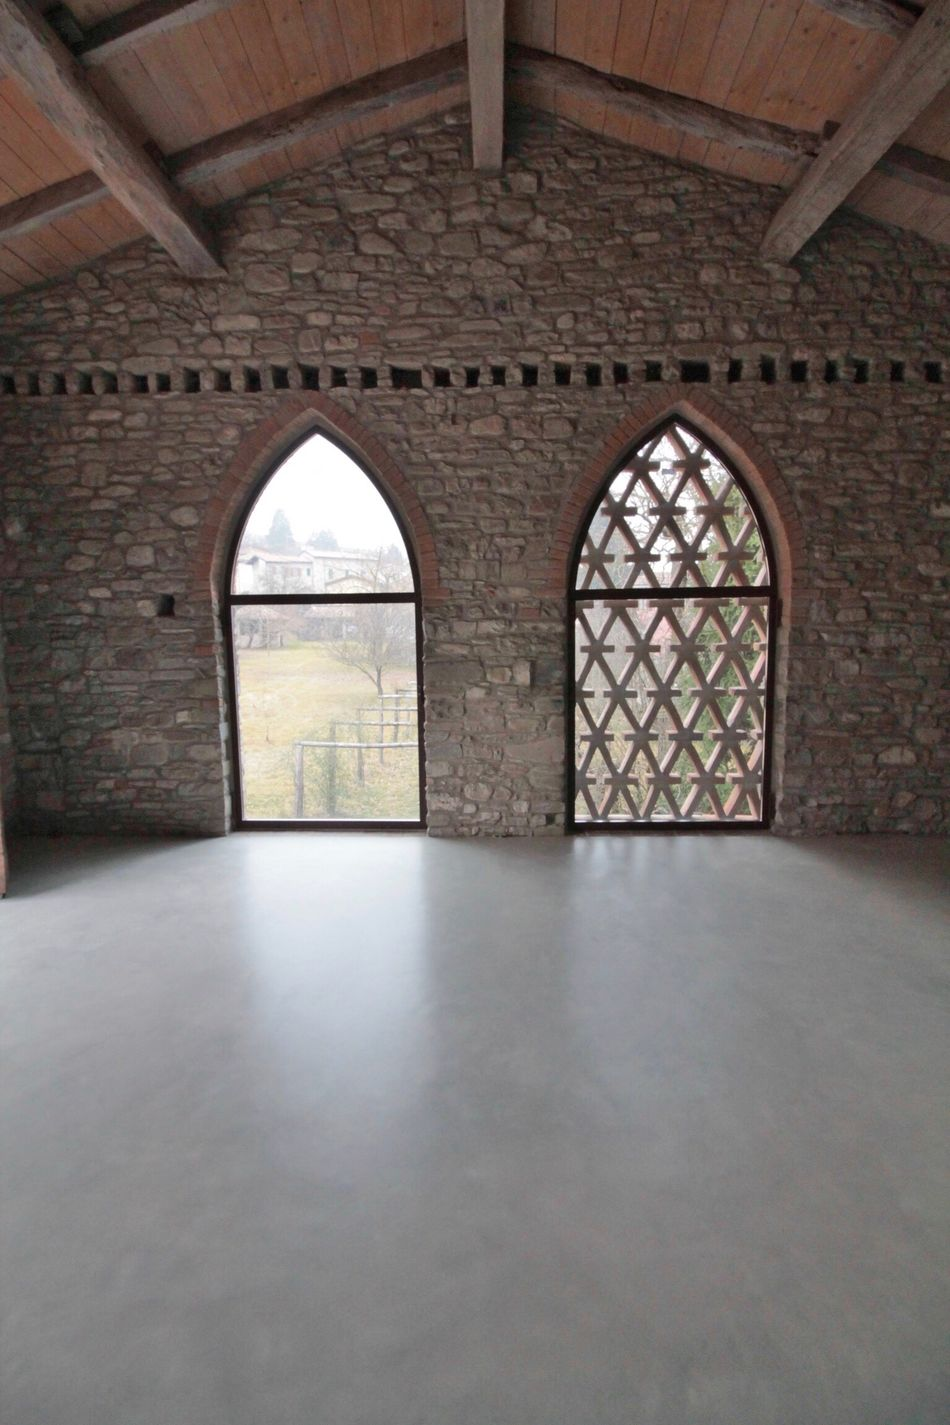 Arch Architecture Indoors  Built Structure Window History Day No People Concrete Floor Living Room Loft Barn Restructured Home Interior EyeEmNewHere Scenics The Secret Spaces